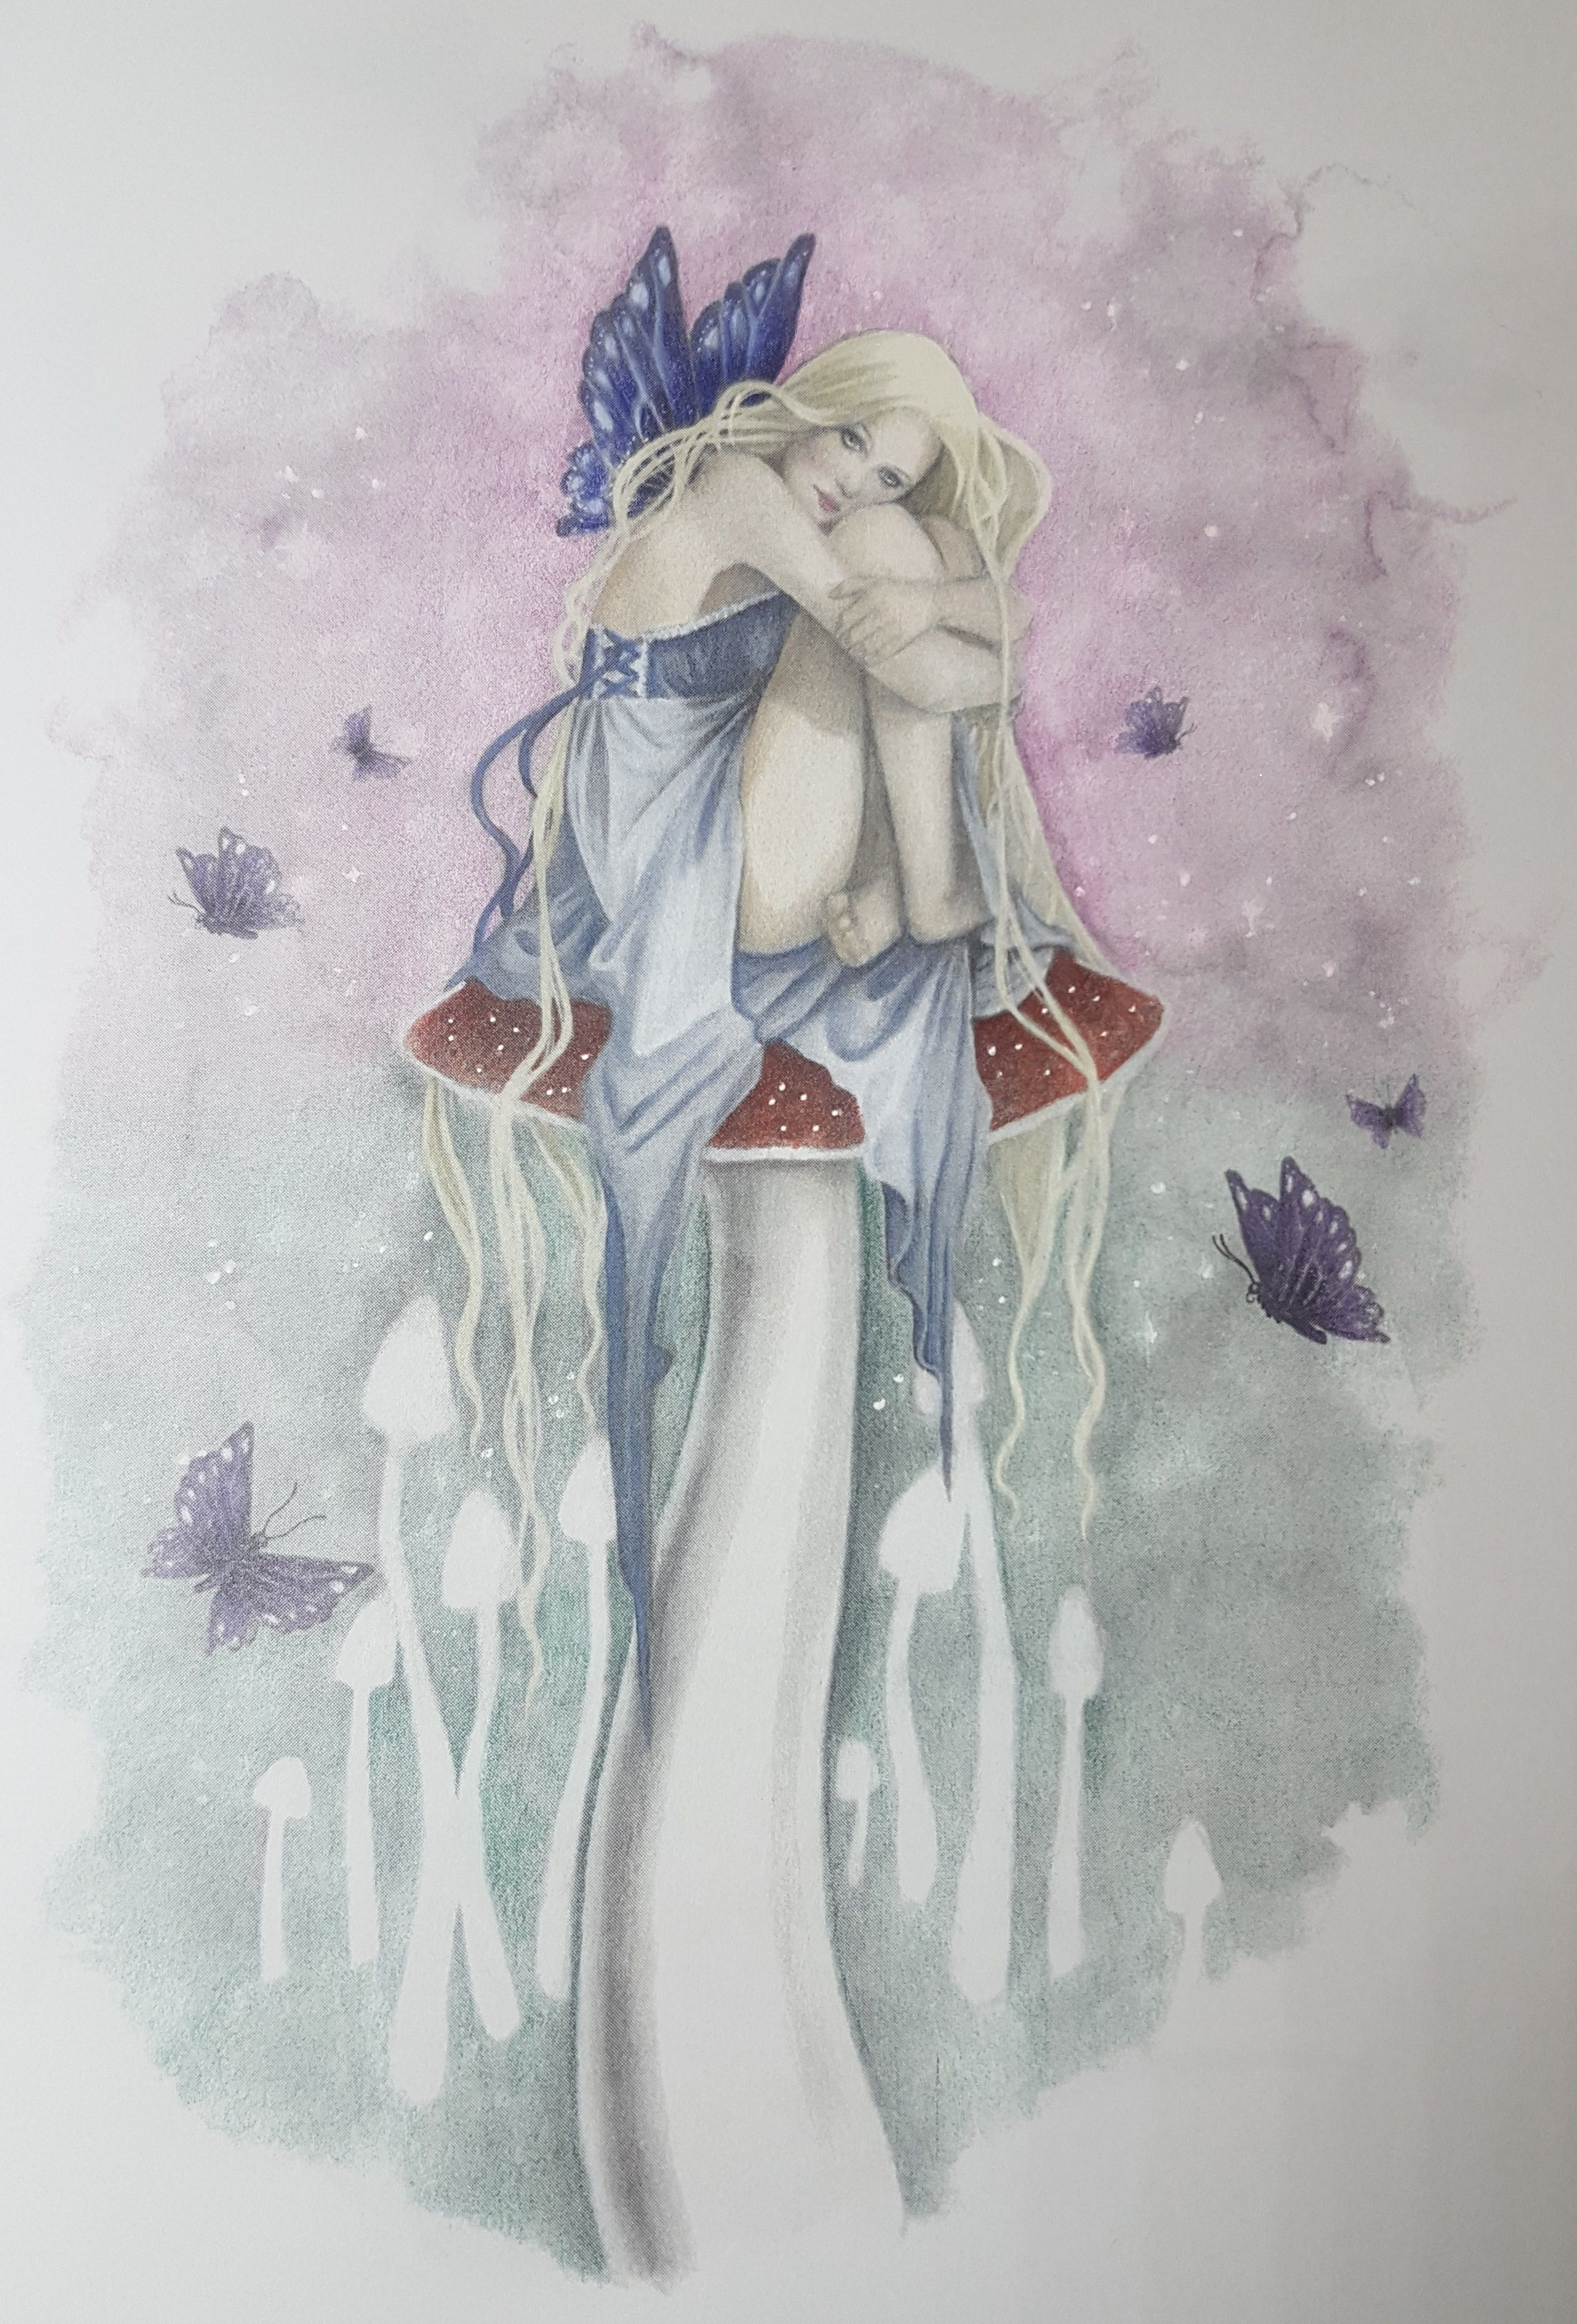 Fairy art coloring book by selina fenech - Picture Is From Selina Fenech Grayscale Fairy Art I Used Prismacolor Penciles And Love Prismacolorfairy Artbook Artcolouringfairies